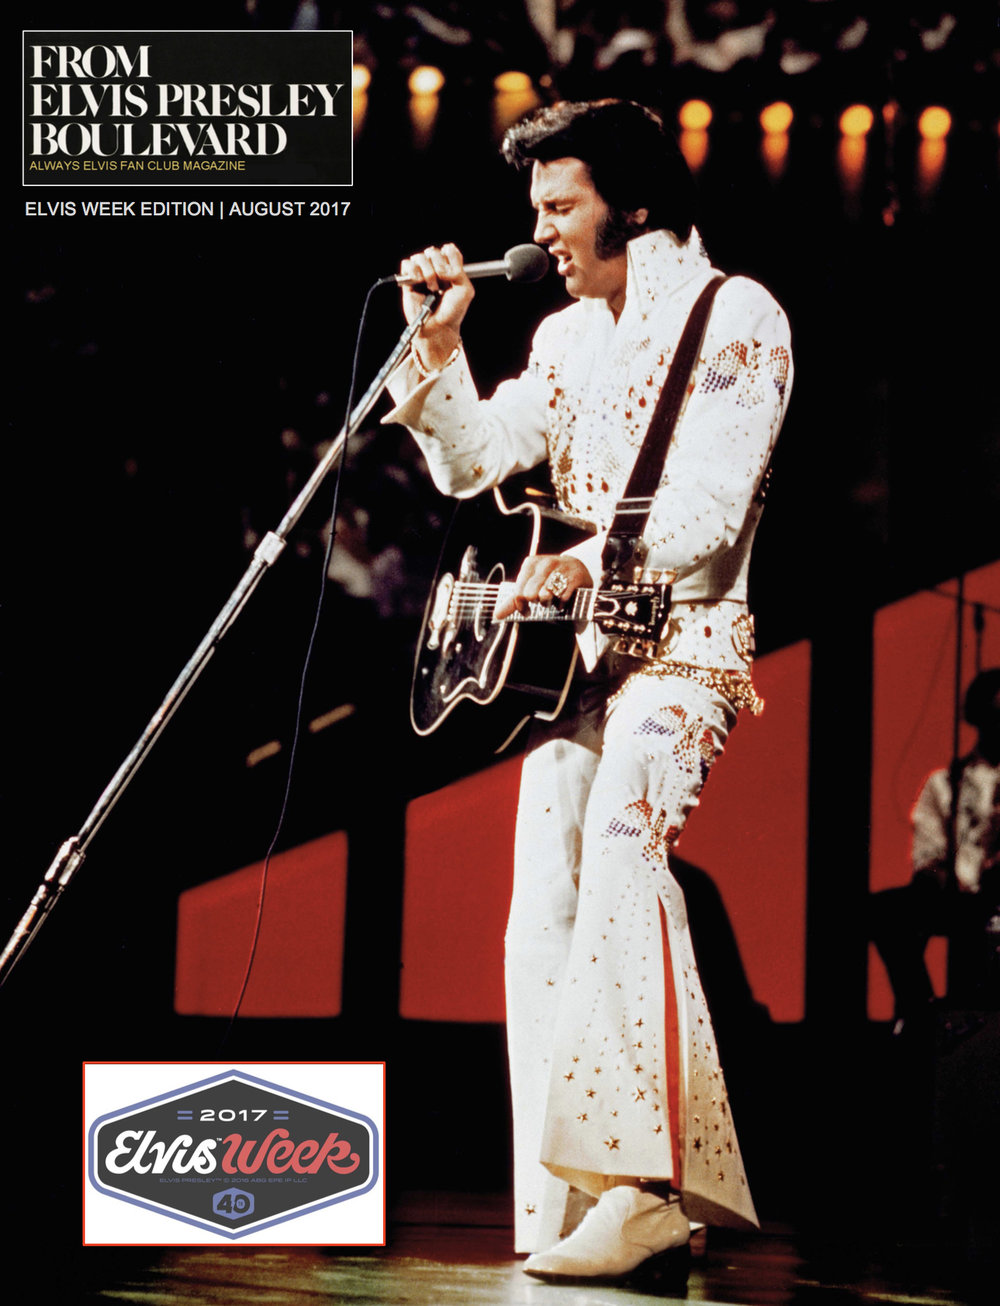 From Elvis Presley Boulevard online magazine features full color high resolution photos of Elvis throughout his career.  Click to enlarge.